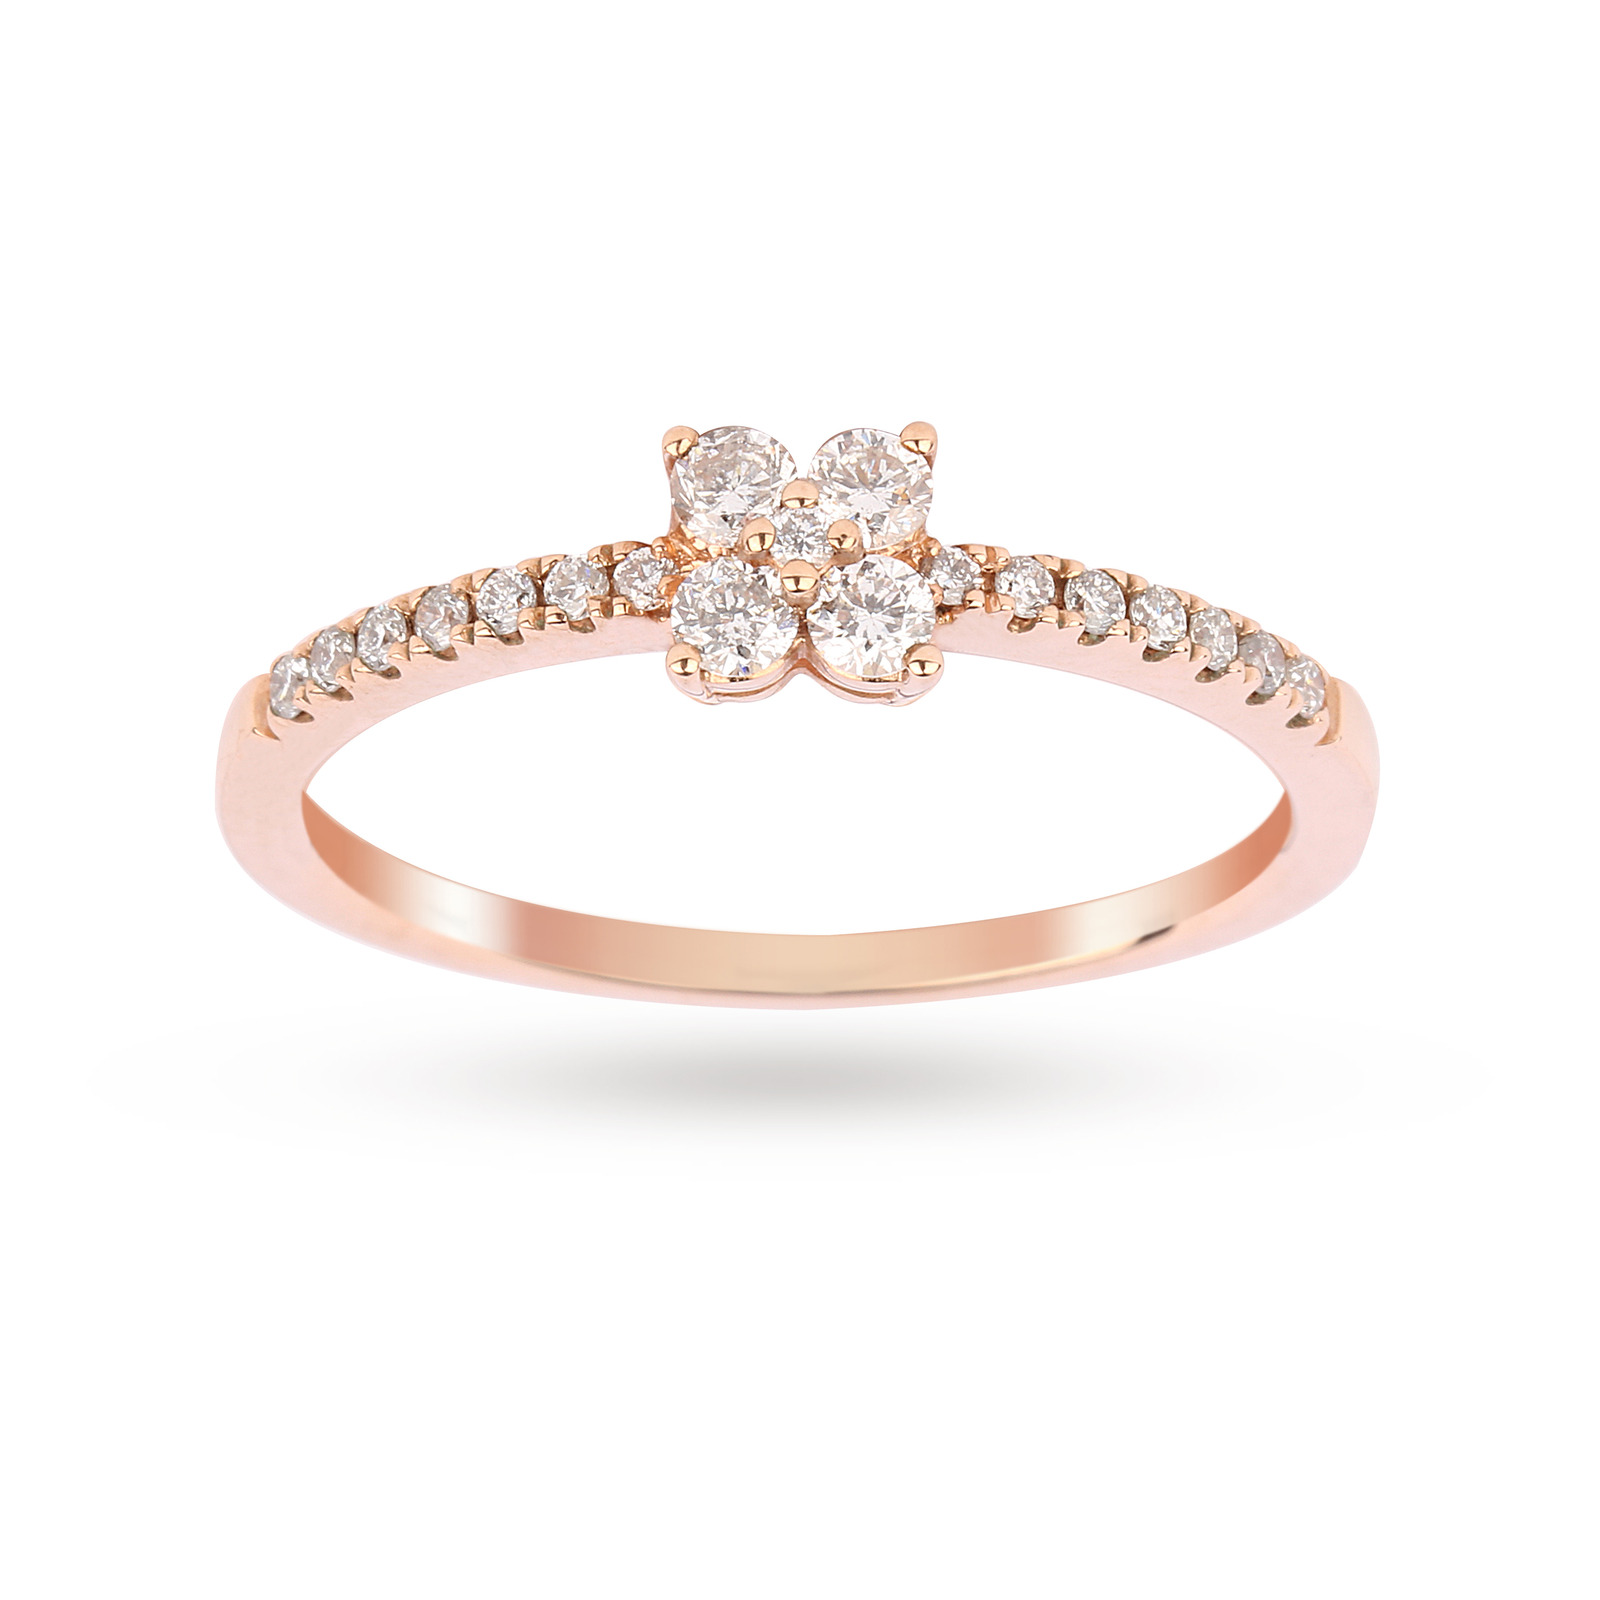 Brilliant Cut 0.30 Carat Total Weight Diamond Promise Engagement Ring in  9 Carat Rose Gold